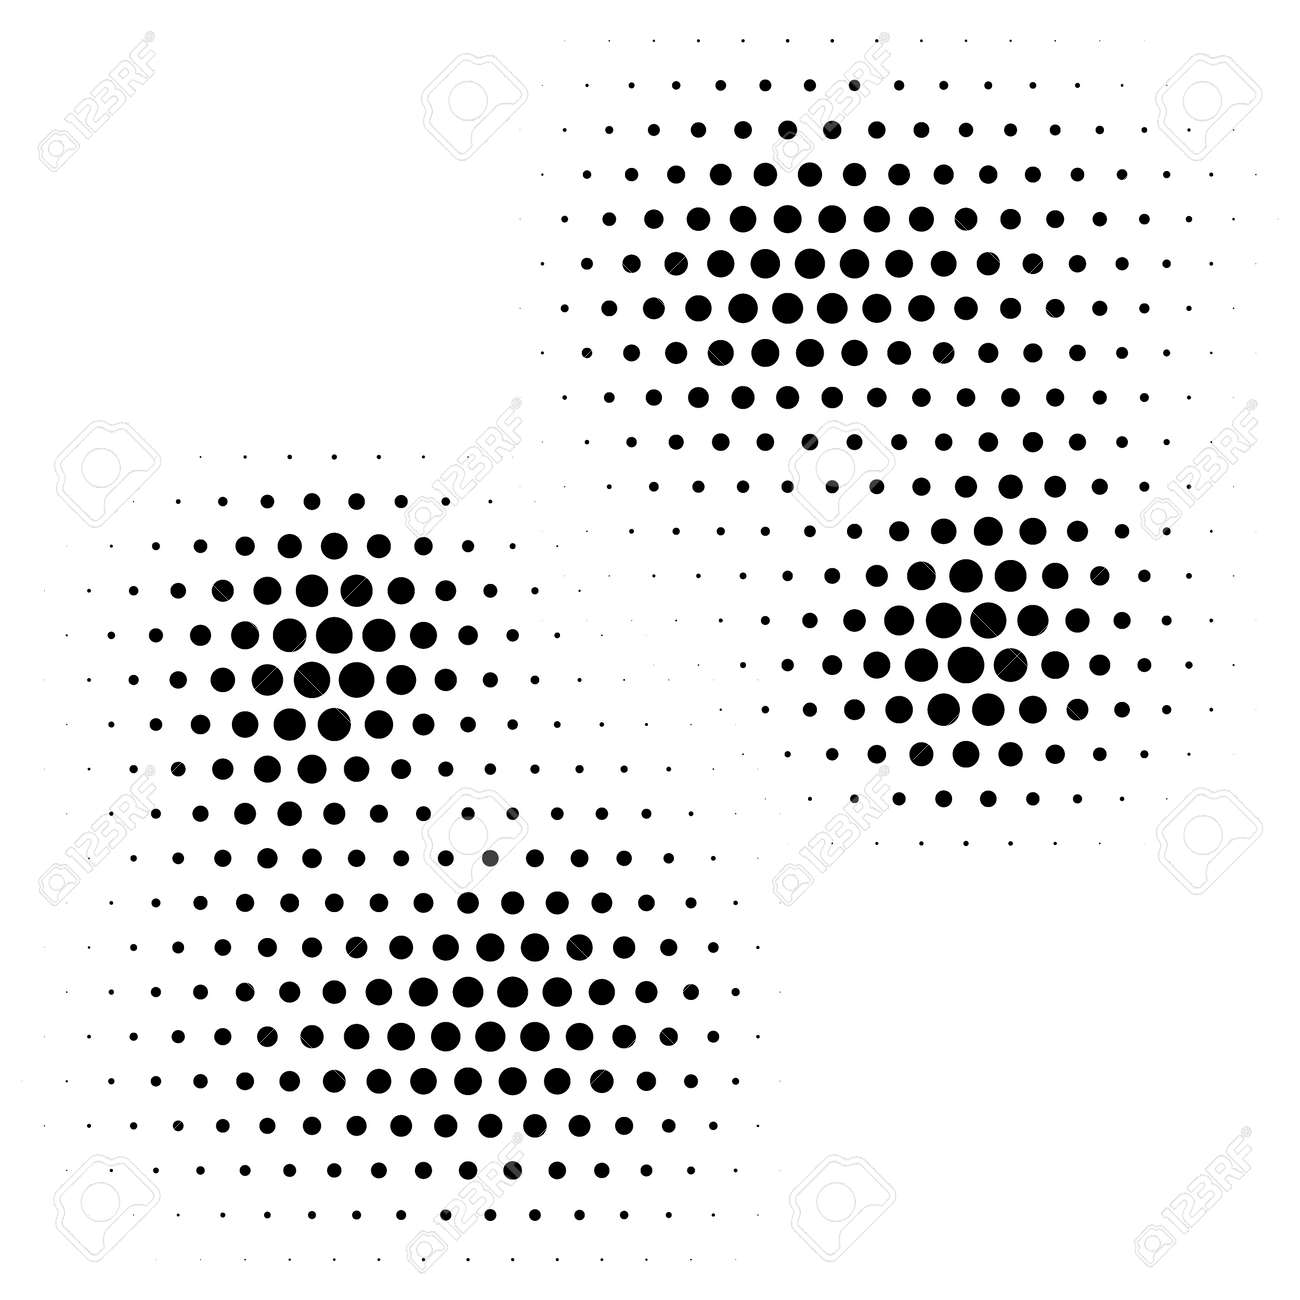 Halftone design background. Monochrome halftone pattern. Abstract geometric dots background. - 168461130